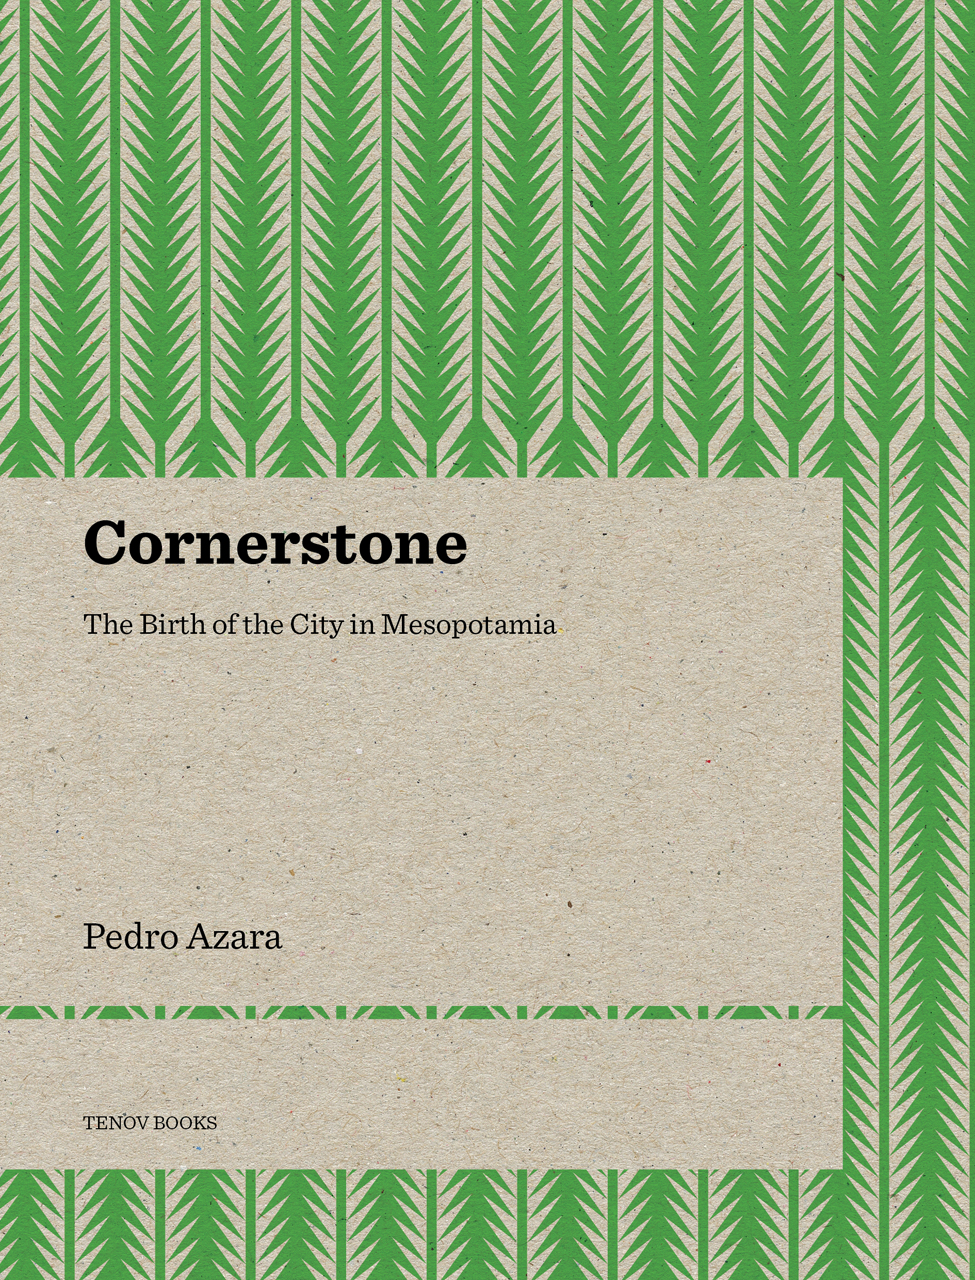 Cornerstone: The Birth of the City in Mesopotamia